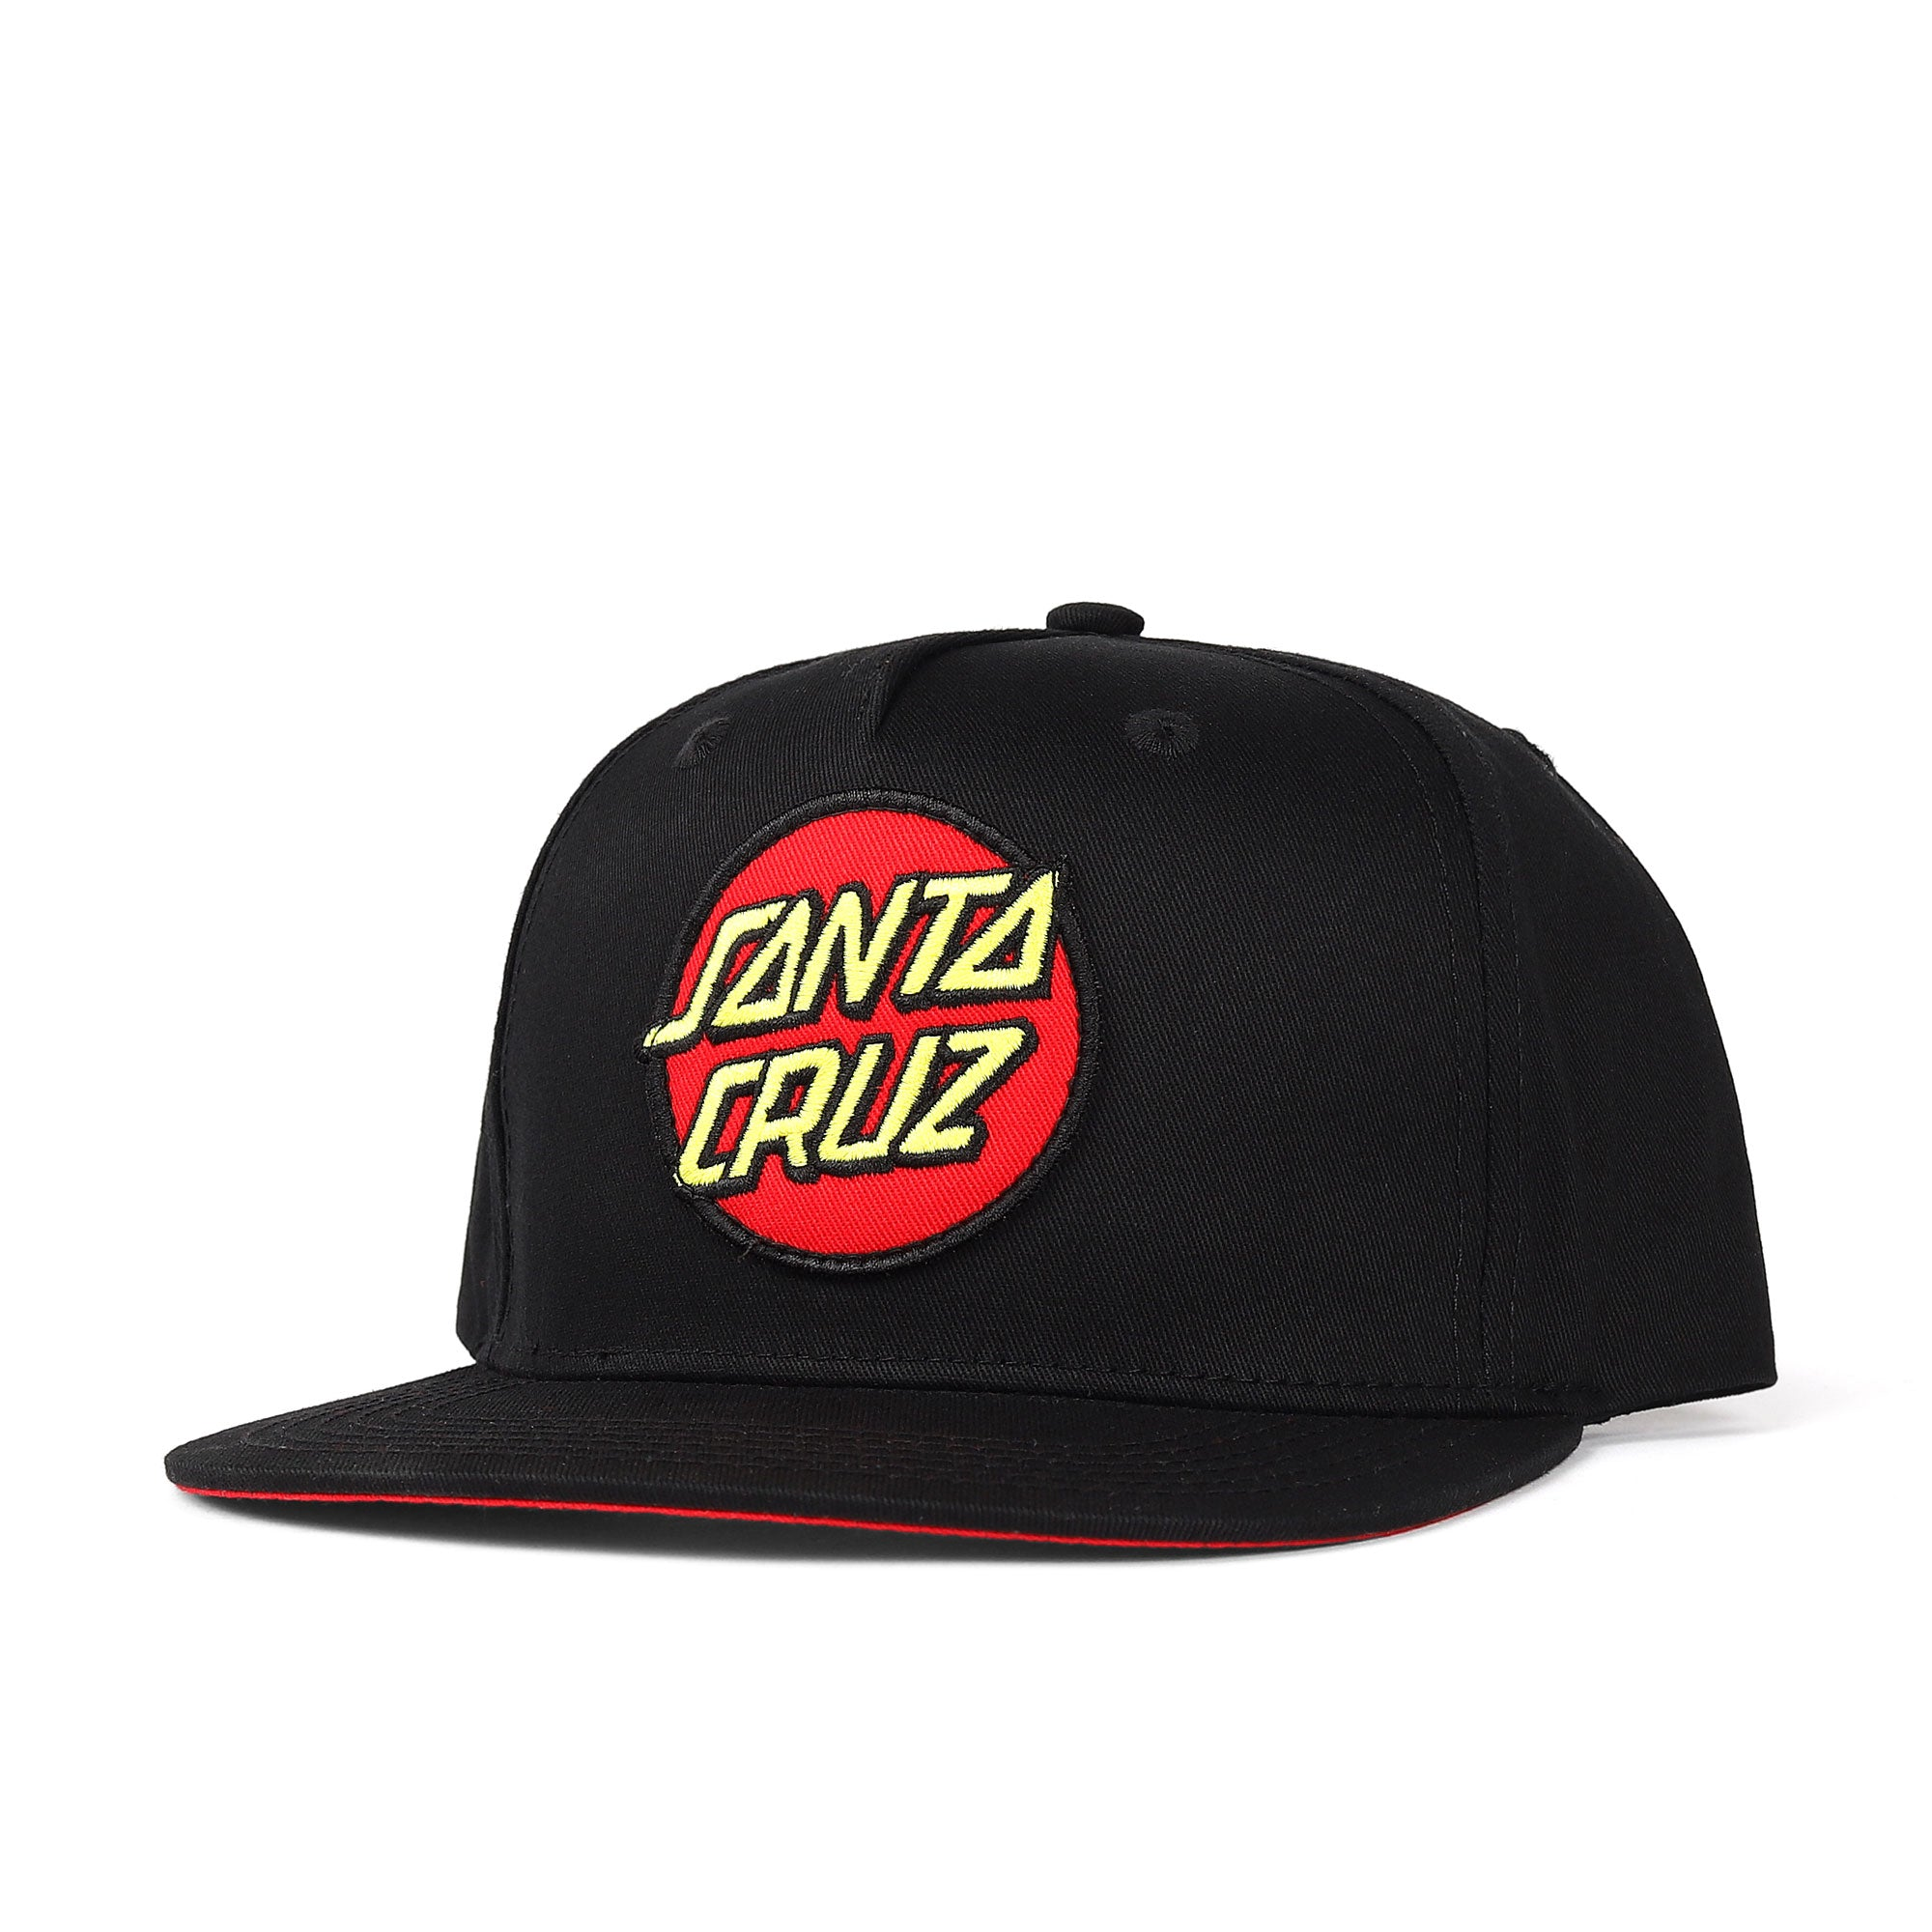 Santa Cruz Classic Patch Snapback Cap Product Photo #1